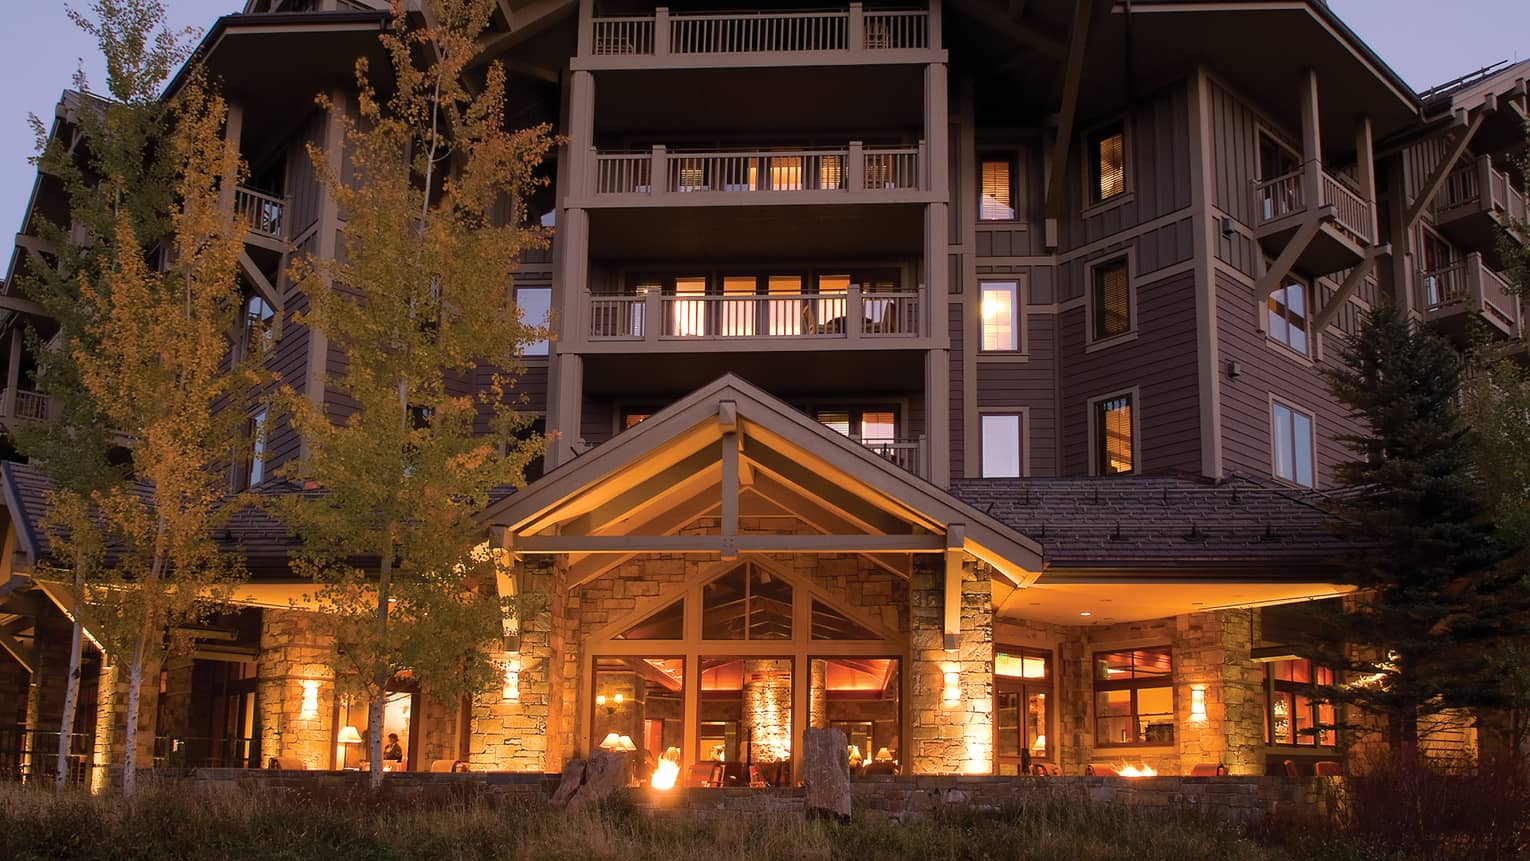 West side exterior view of Four Seasons Resort Jackson Hole at dusk